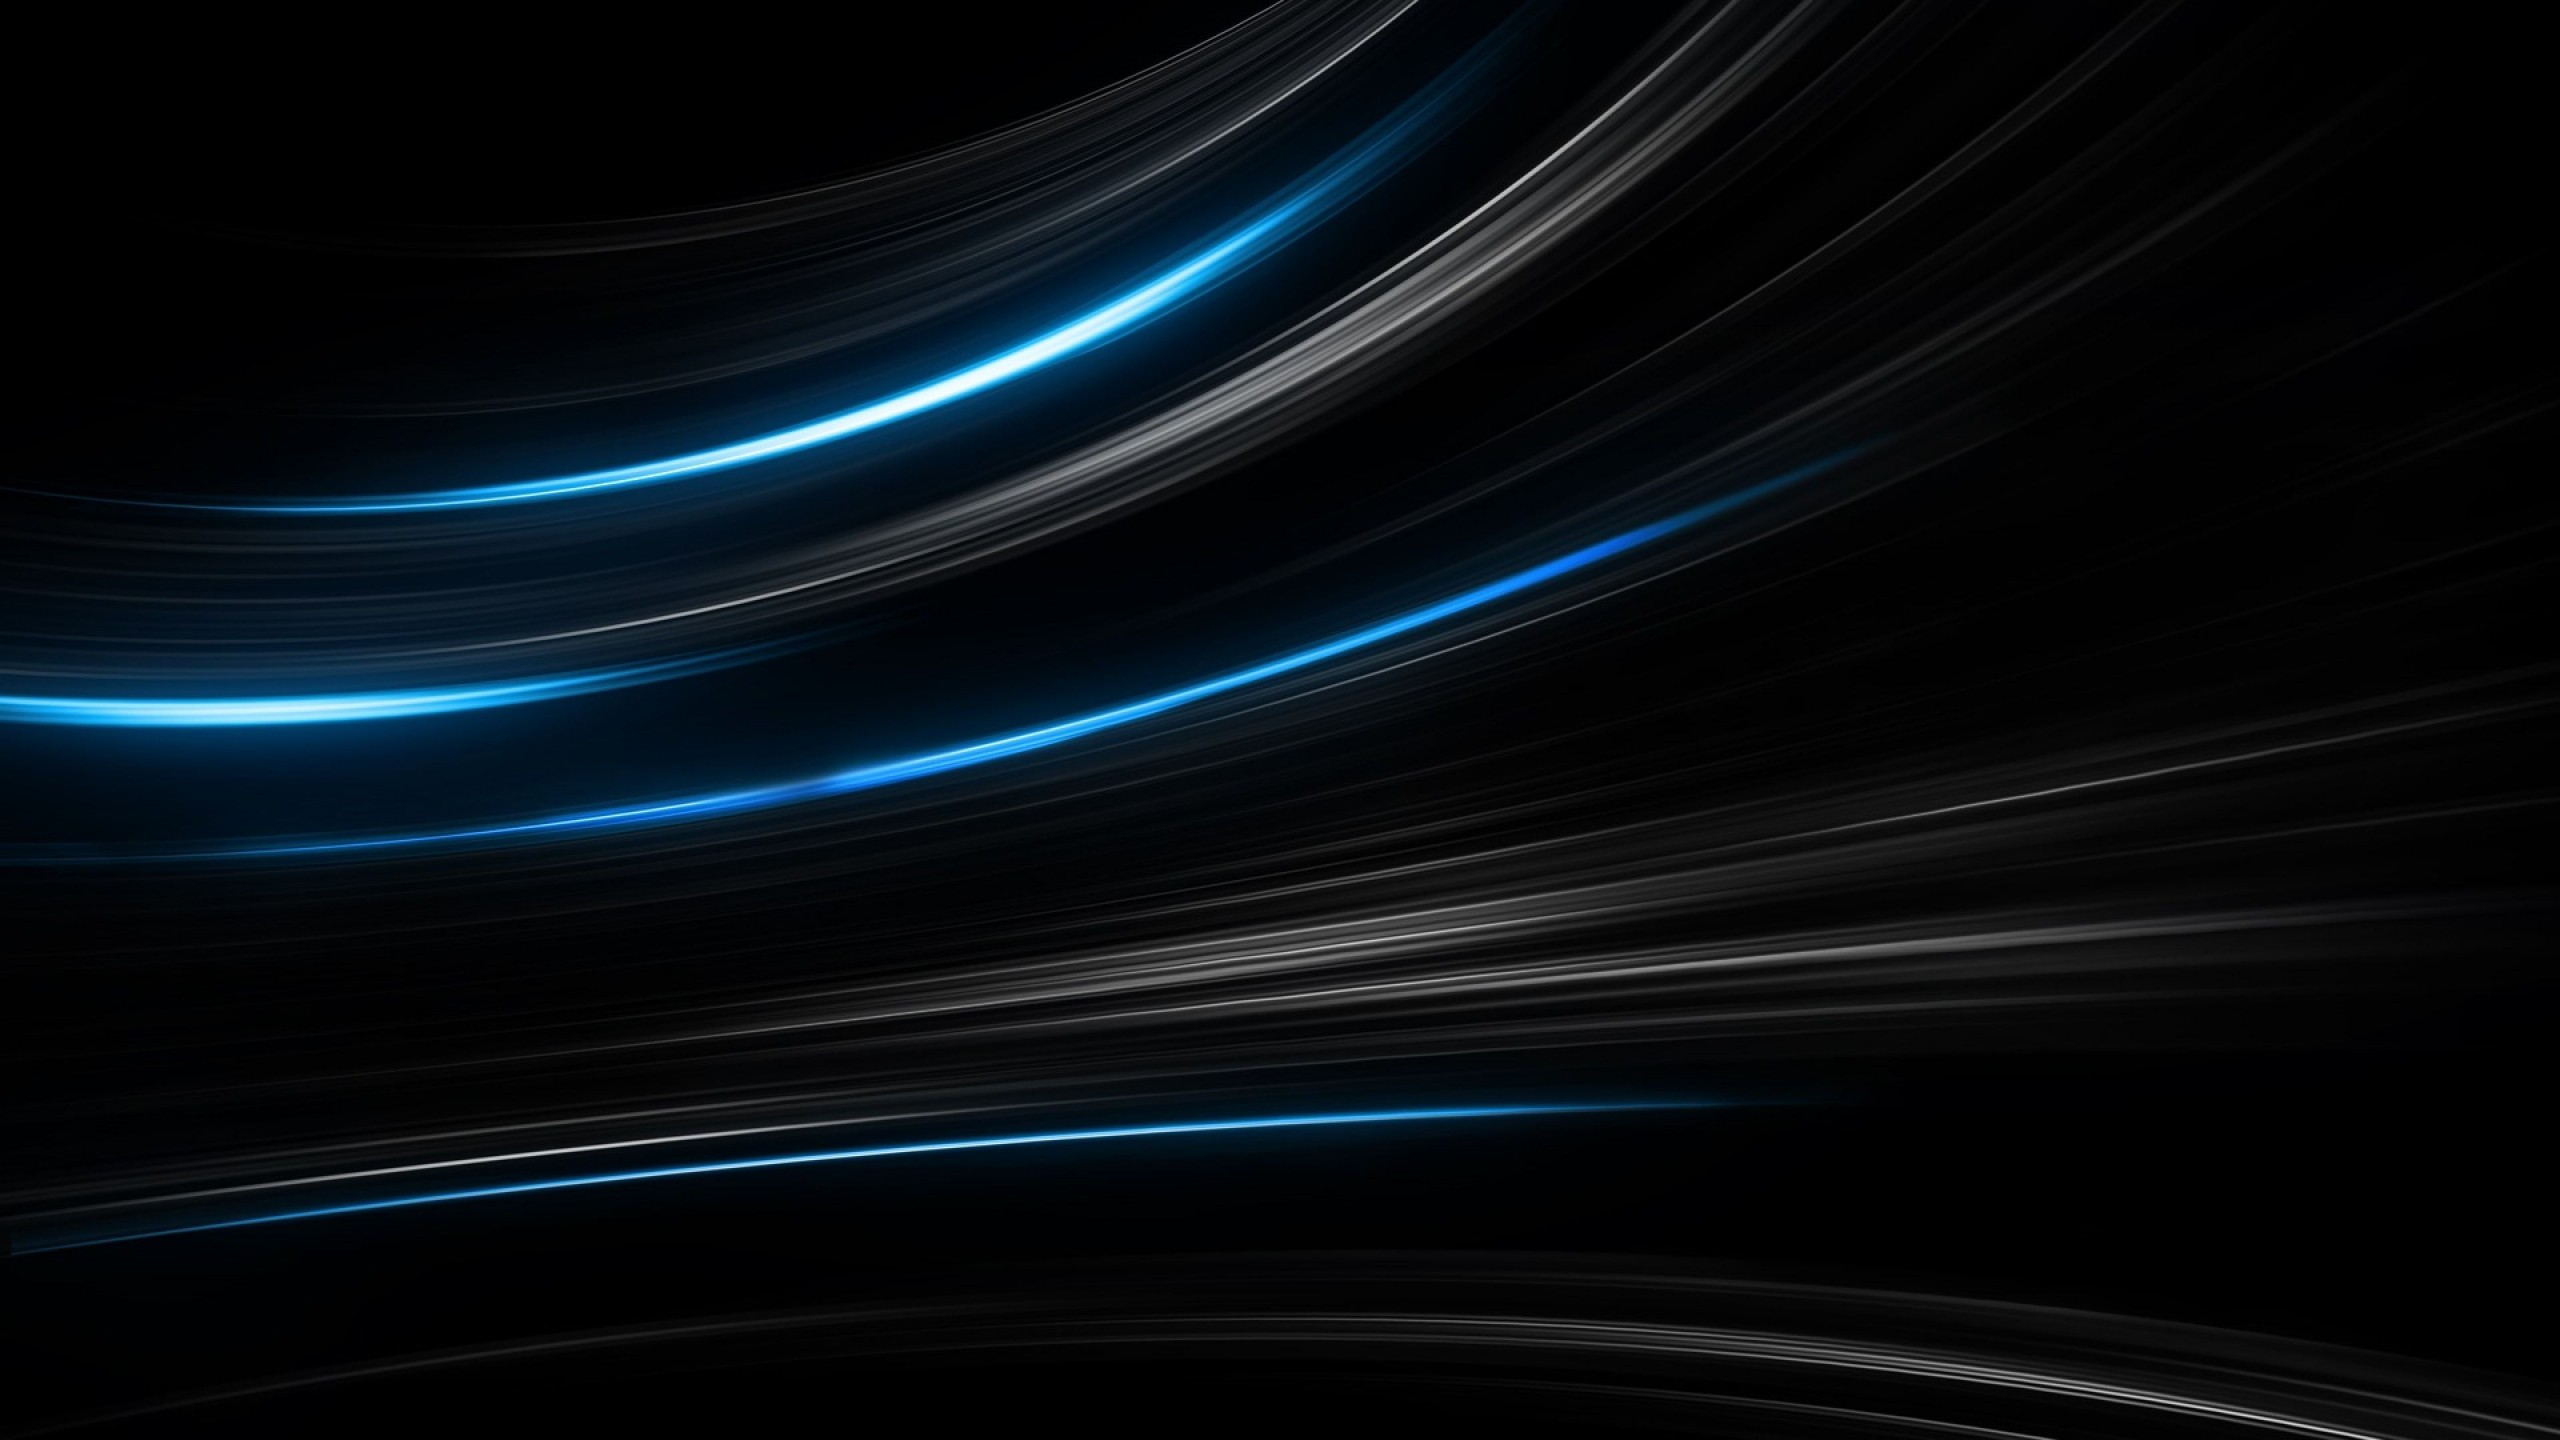 Wallpaper Lines Black Blue 4k Abstract 15378 Page 811